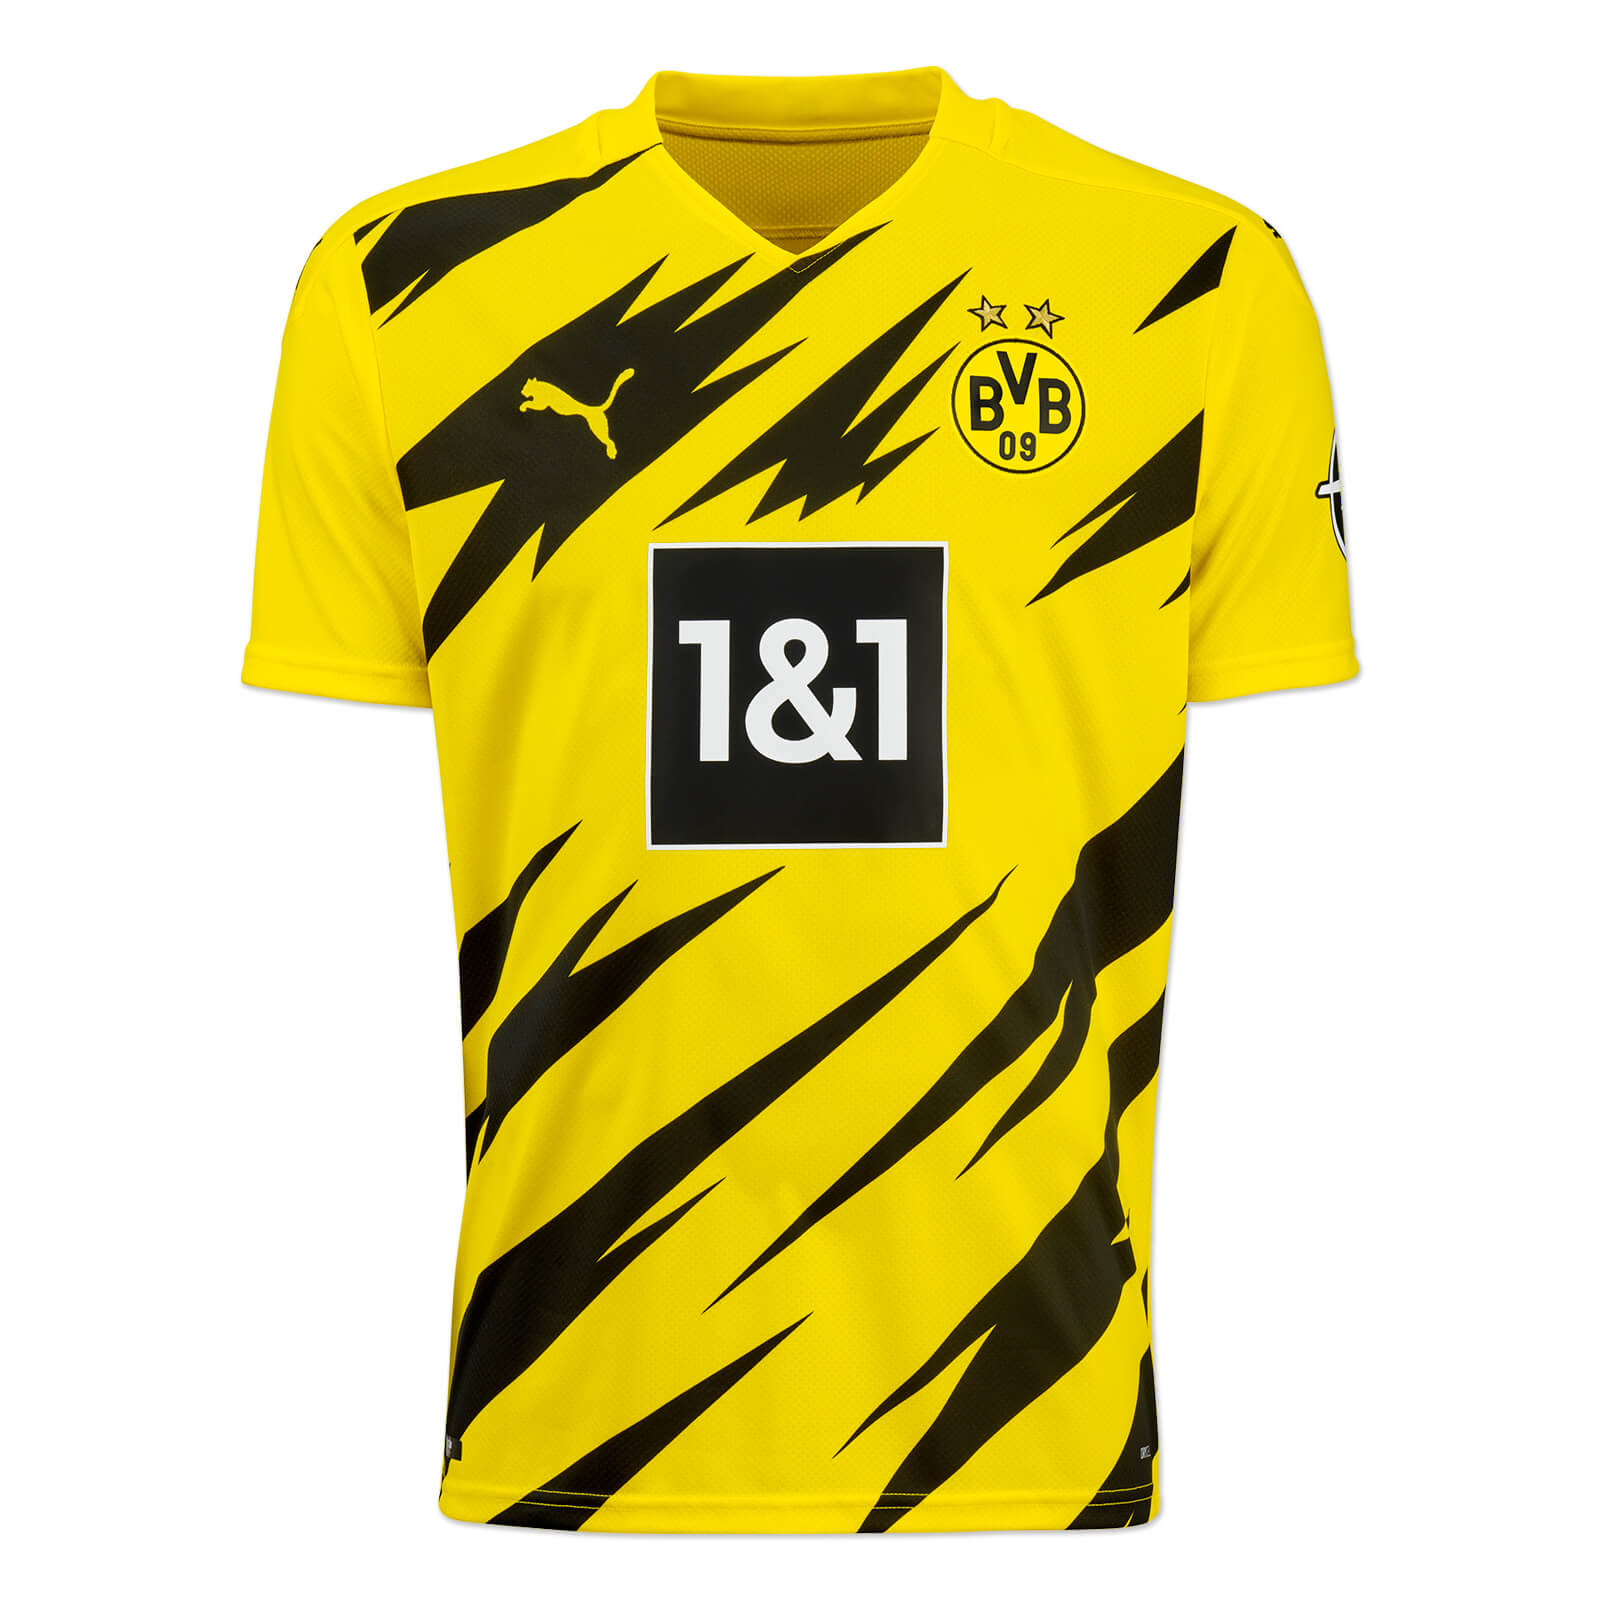 Bvb Jersey 20 21 Home Gifts For Men Christmas Bvb Onlineshop